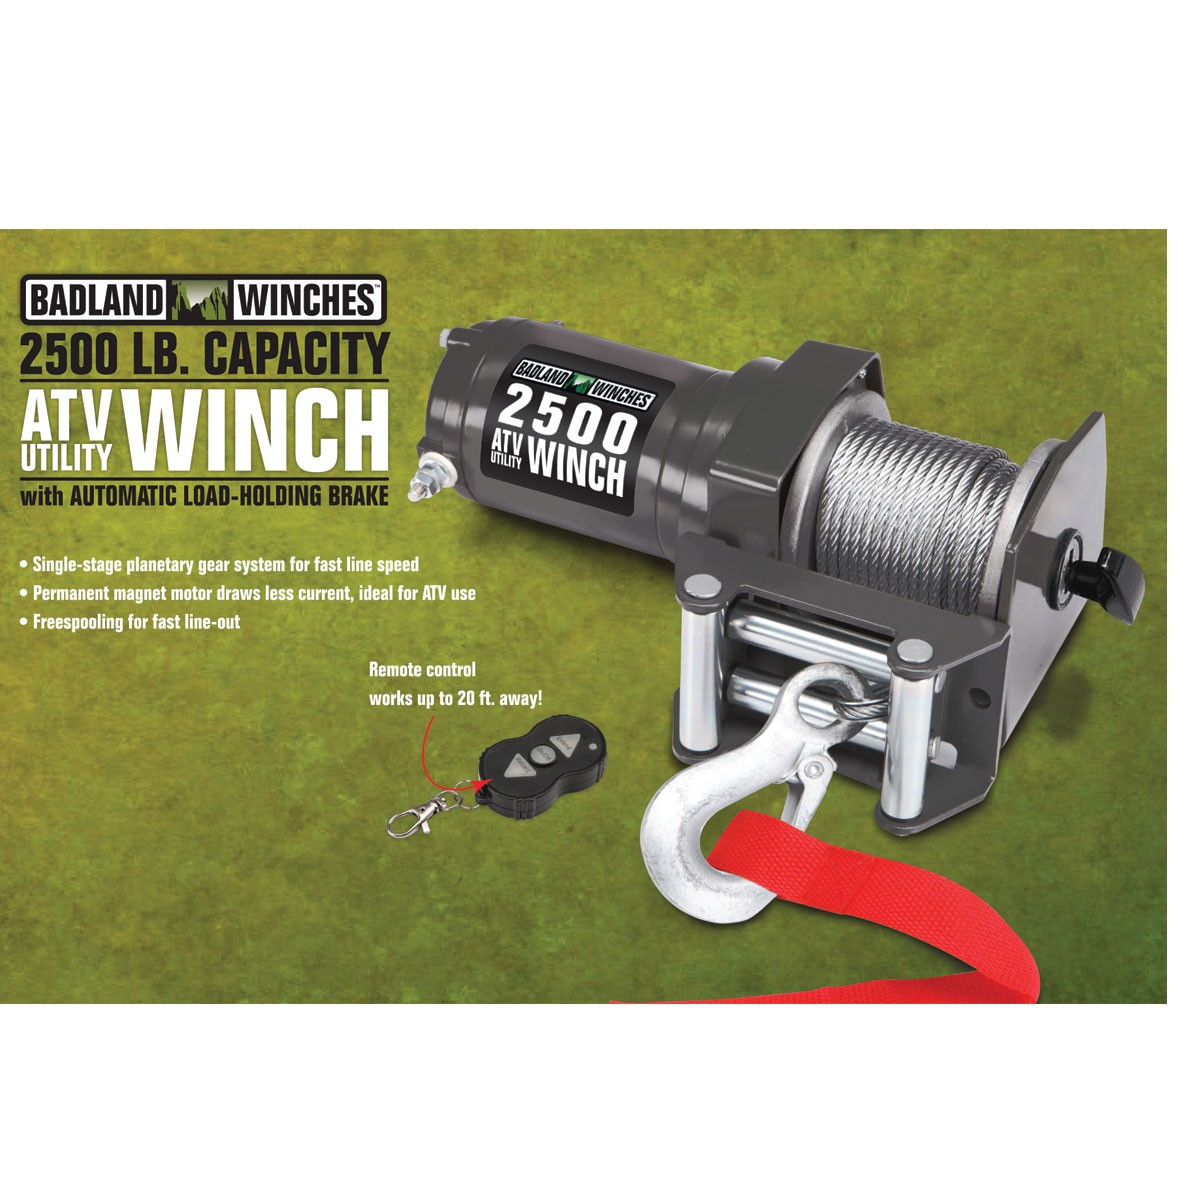 Badland Winches Wiring 61672 | Control Cables & Wiring Diagram on mile marker winch wiring diagram, superwinch solenoid wiring diagram, badland wireless remote wiring diagram, ramsey 12000 winch wiring diagram, 4 post solenoid wiring diagram, 6.7 powerstroke diagram, trakker winch wiring diagram, pierce winch wiring diagram, badland winches wireless remote diagram, atv winch wiring diagram, superwinch 2500 wiring diagram, electric winch wiring diagram, chicago winch parts diagram,